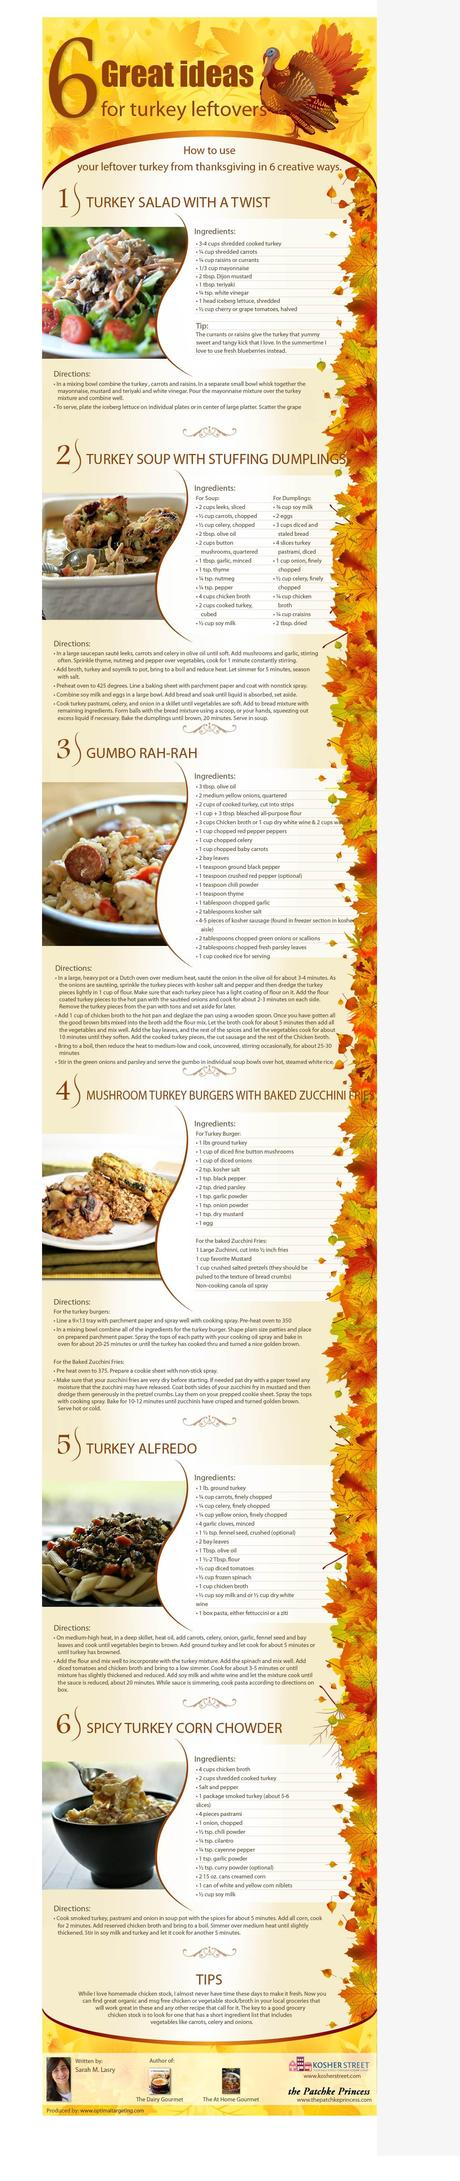 6 Recipes For Leftover Turkey Infographic